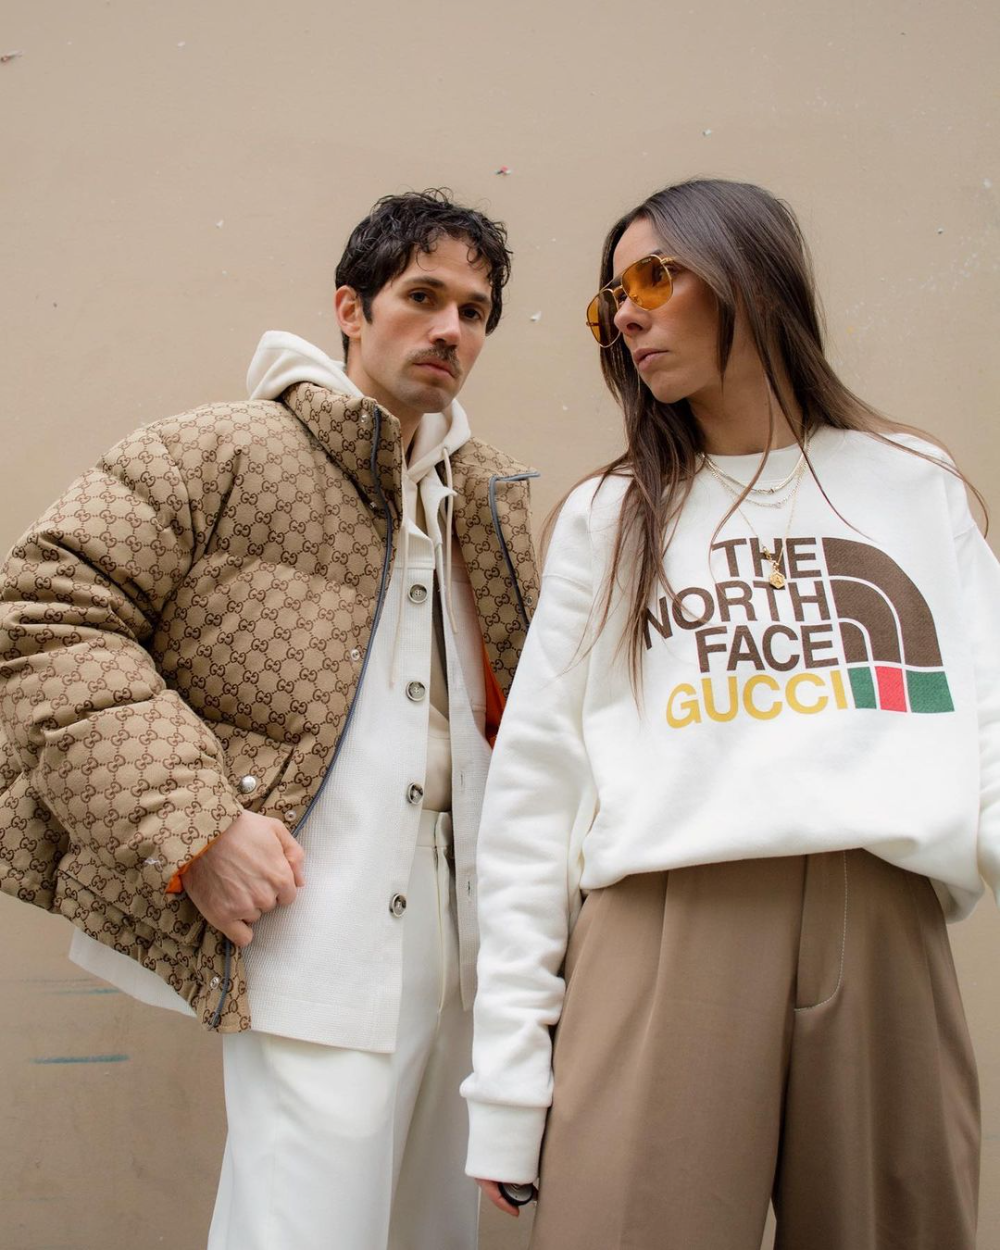 The North Face X Gucci Collaboration Is Now Live And I Want It All In 2021 North Face Outfits North Face Jacket Outfit North Face Sweatshirt [ 1250 x 1000 Pixel ]